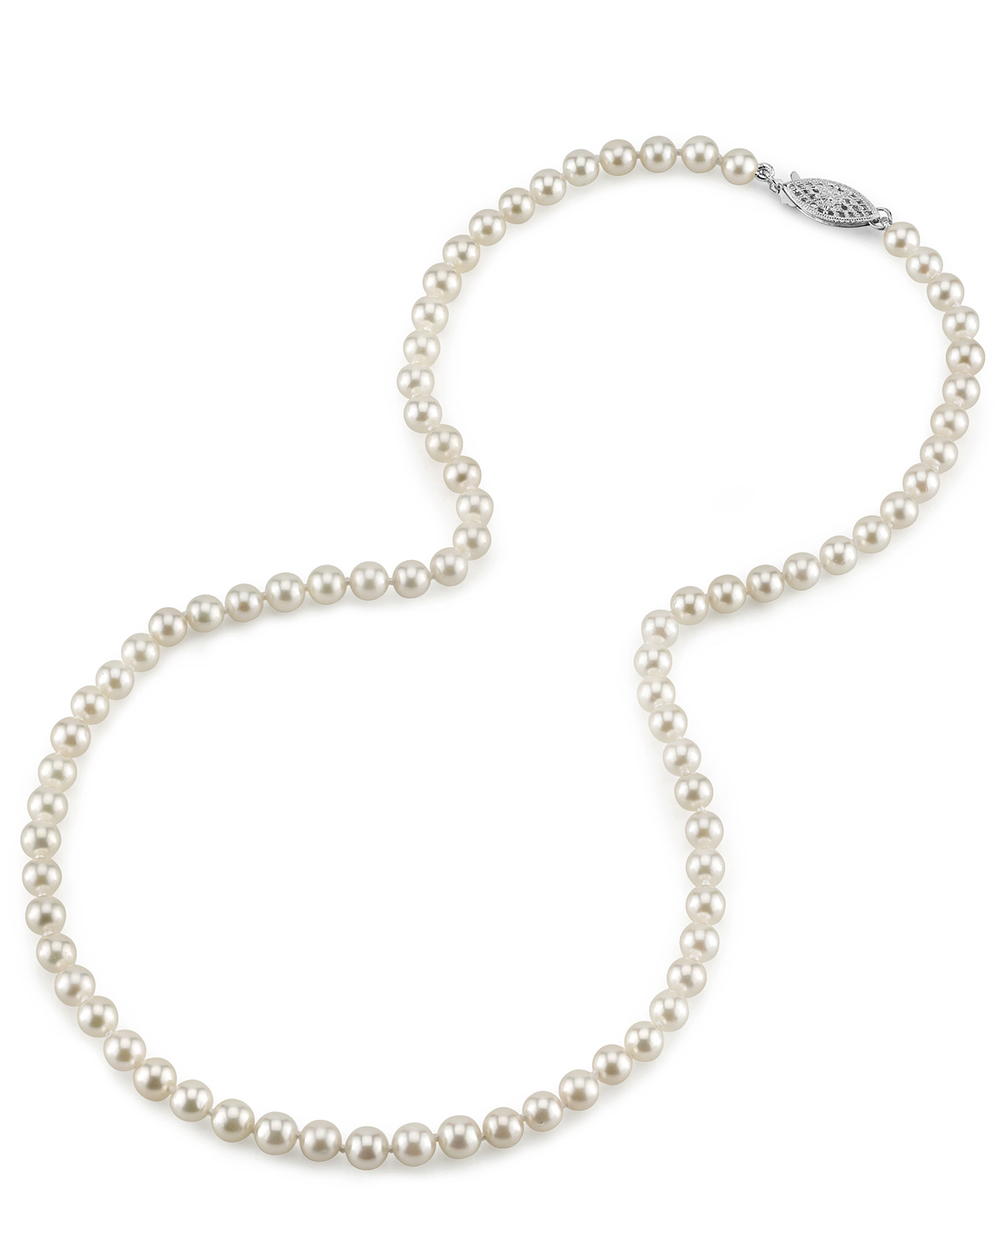 5.0-5.5mm Japanese Akoya White Pearl Necklace- AA+ Quality